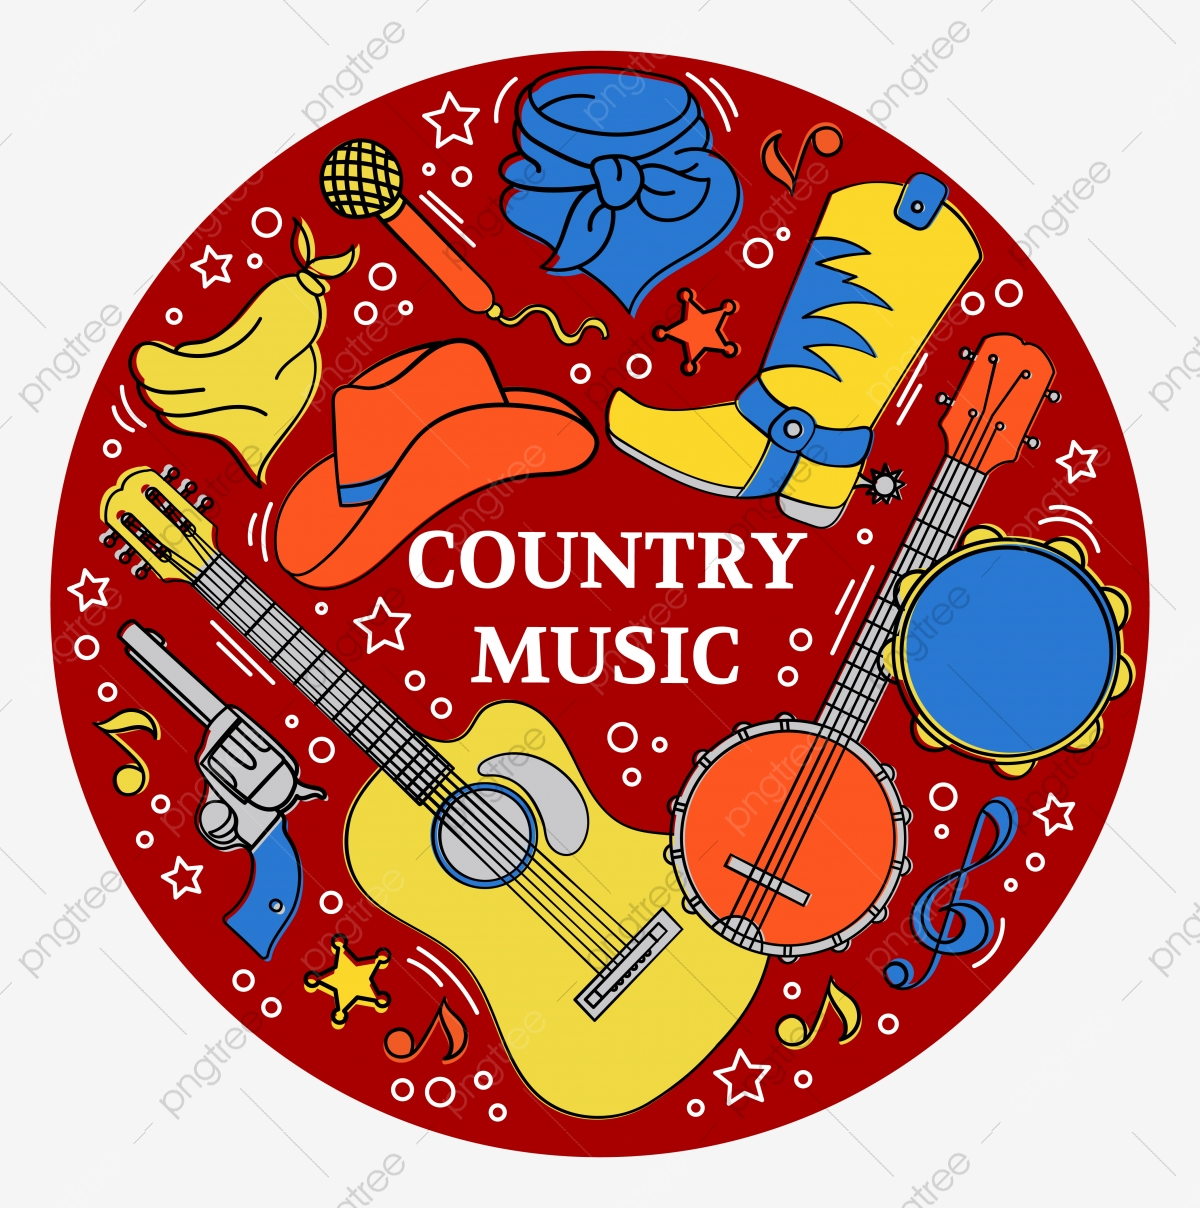 Free Country Music Clipart, Download Free Clip Art, Free Clip Art on Clipart  Library